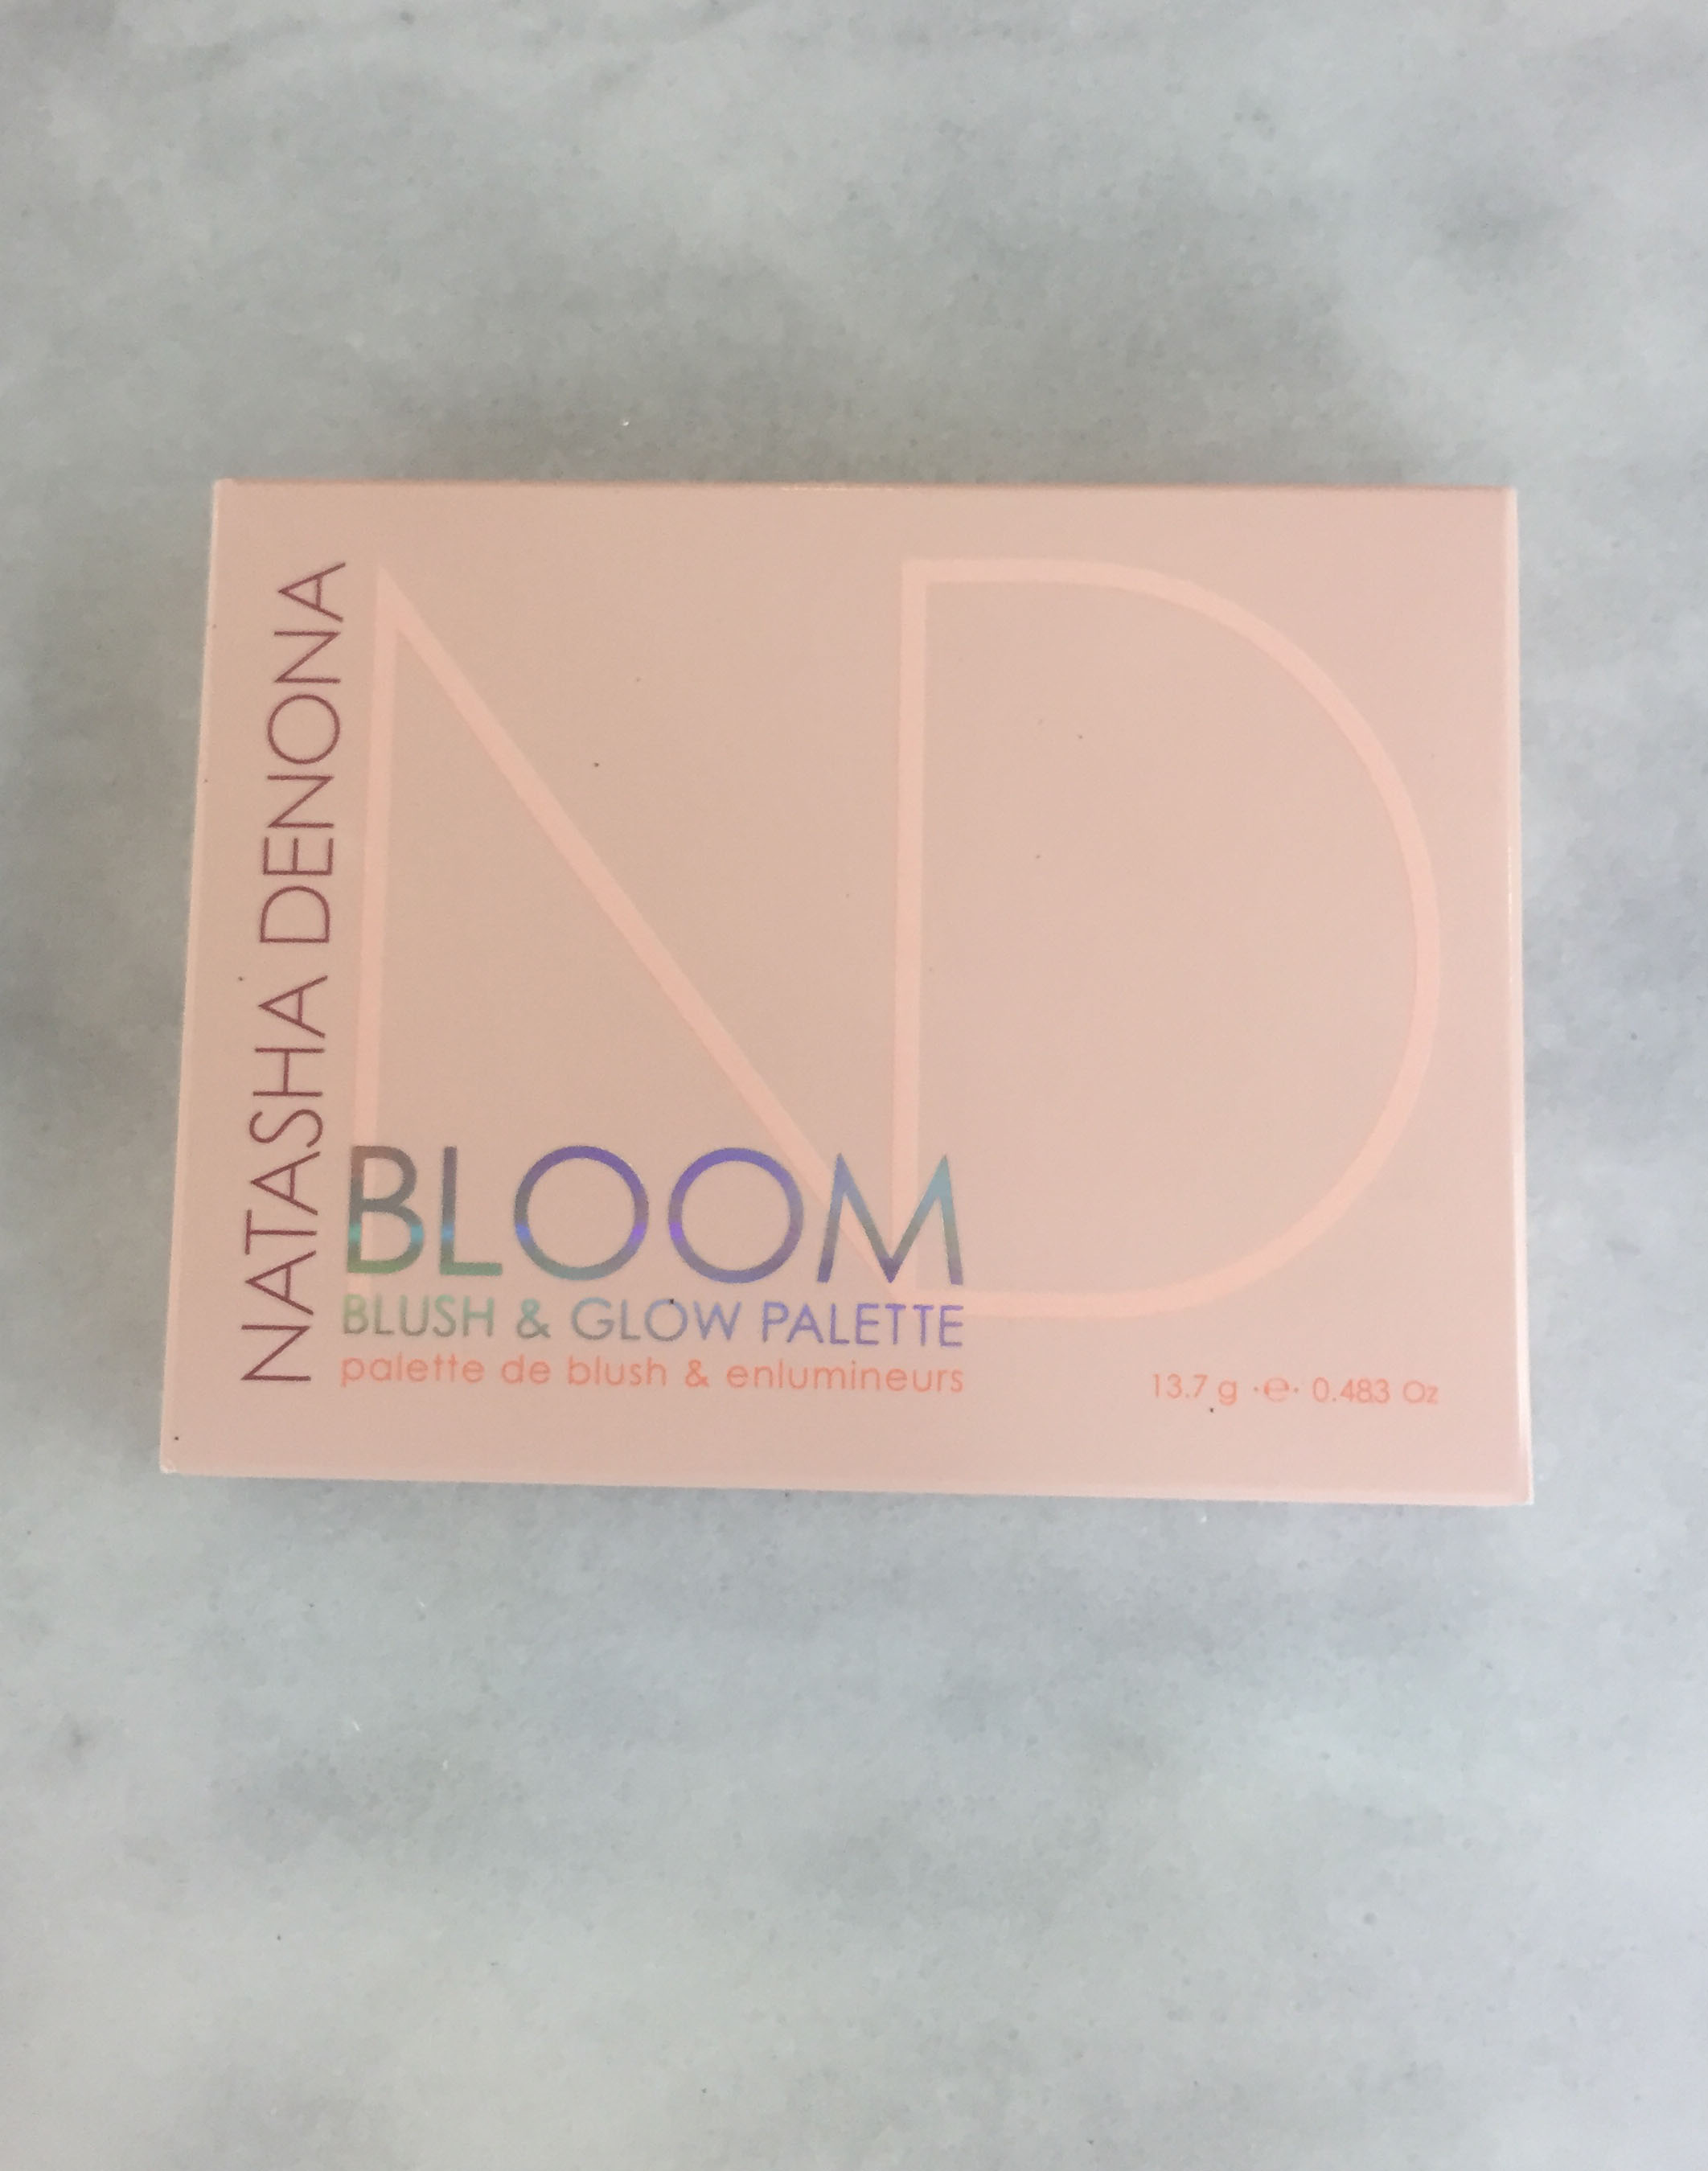 Natasha Denona Bloom Blush and Glow Palette Review | Laurel and Iron